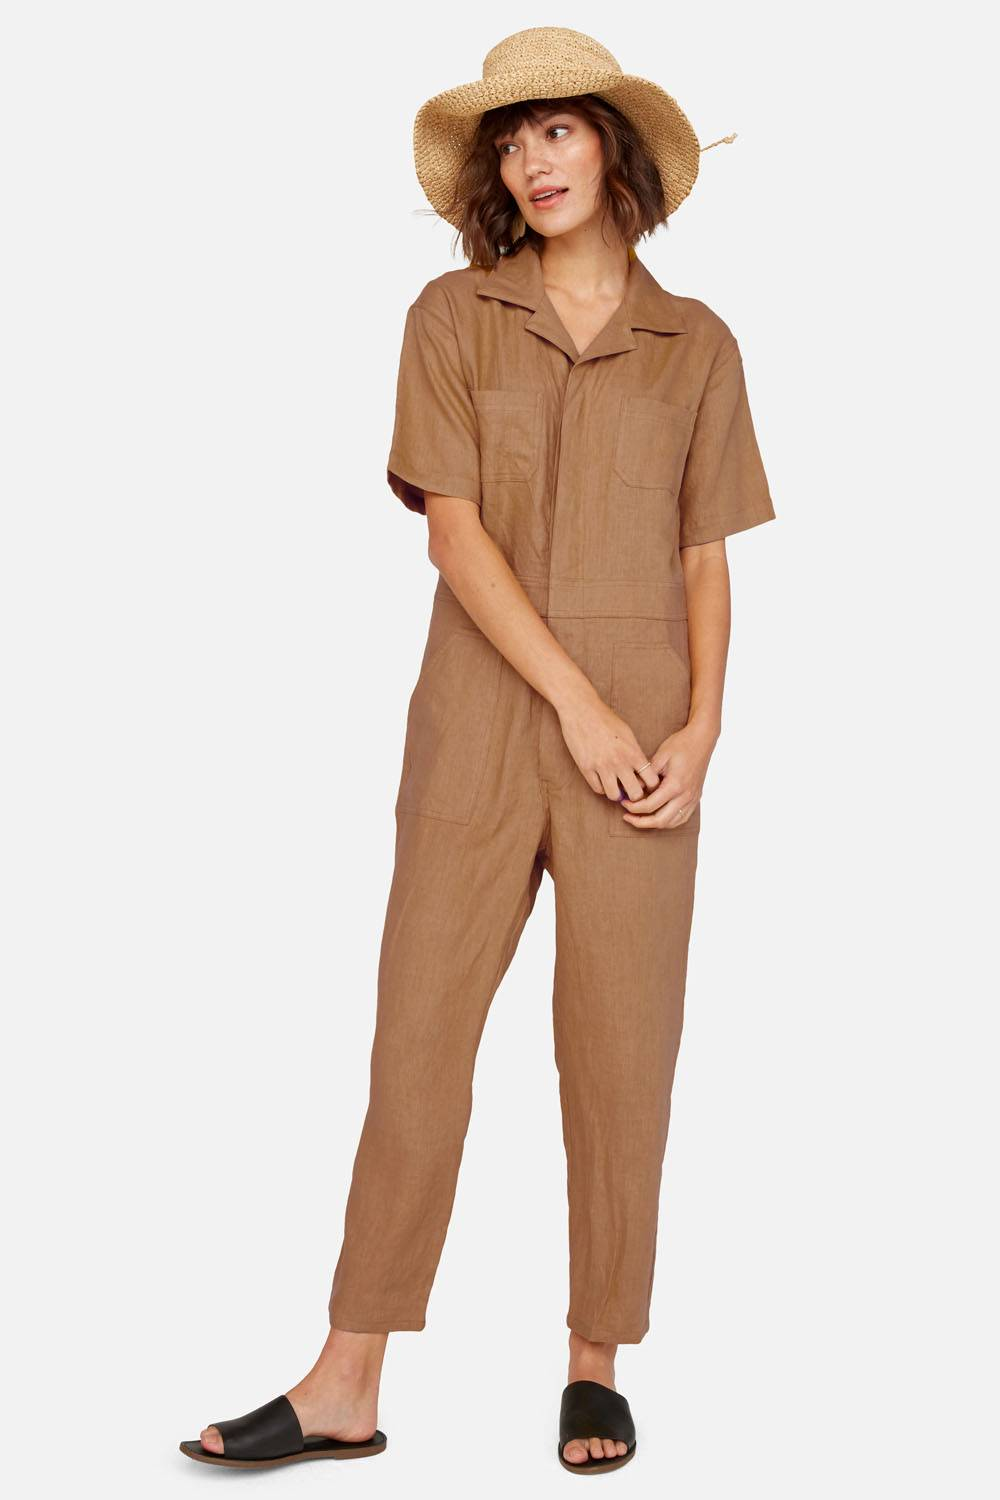 mate affordable linen clothing made in usa